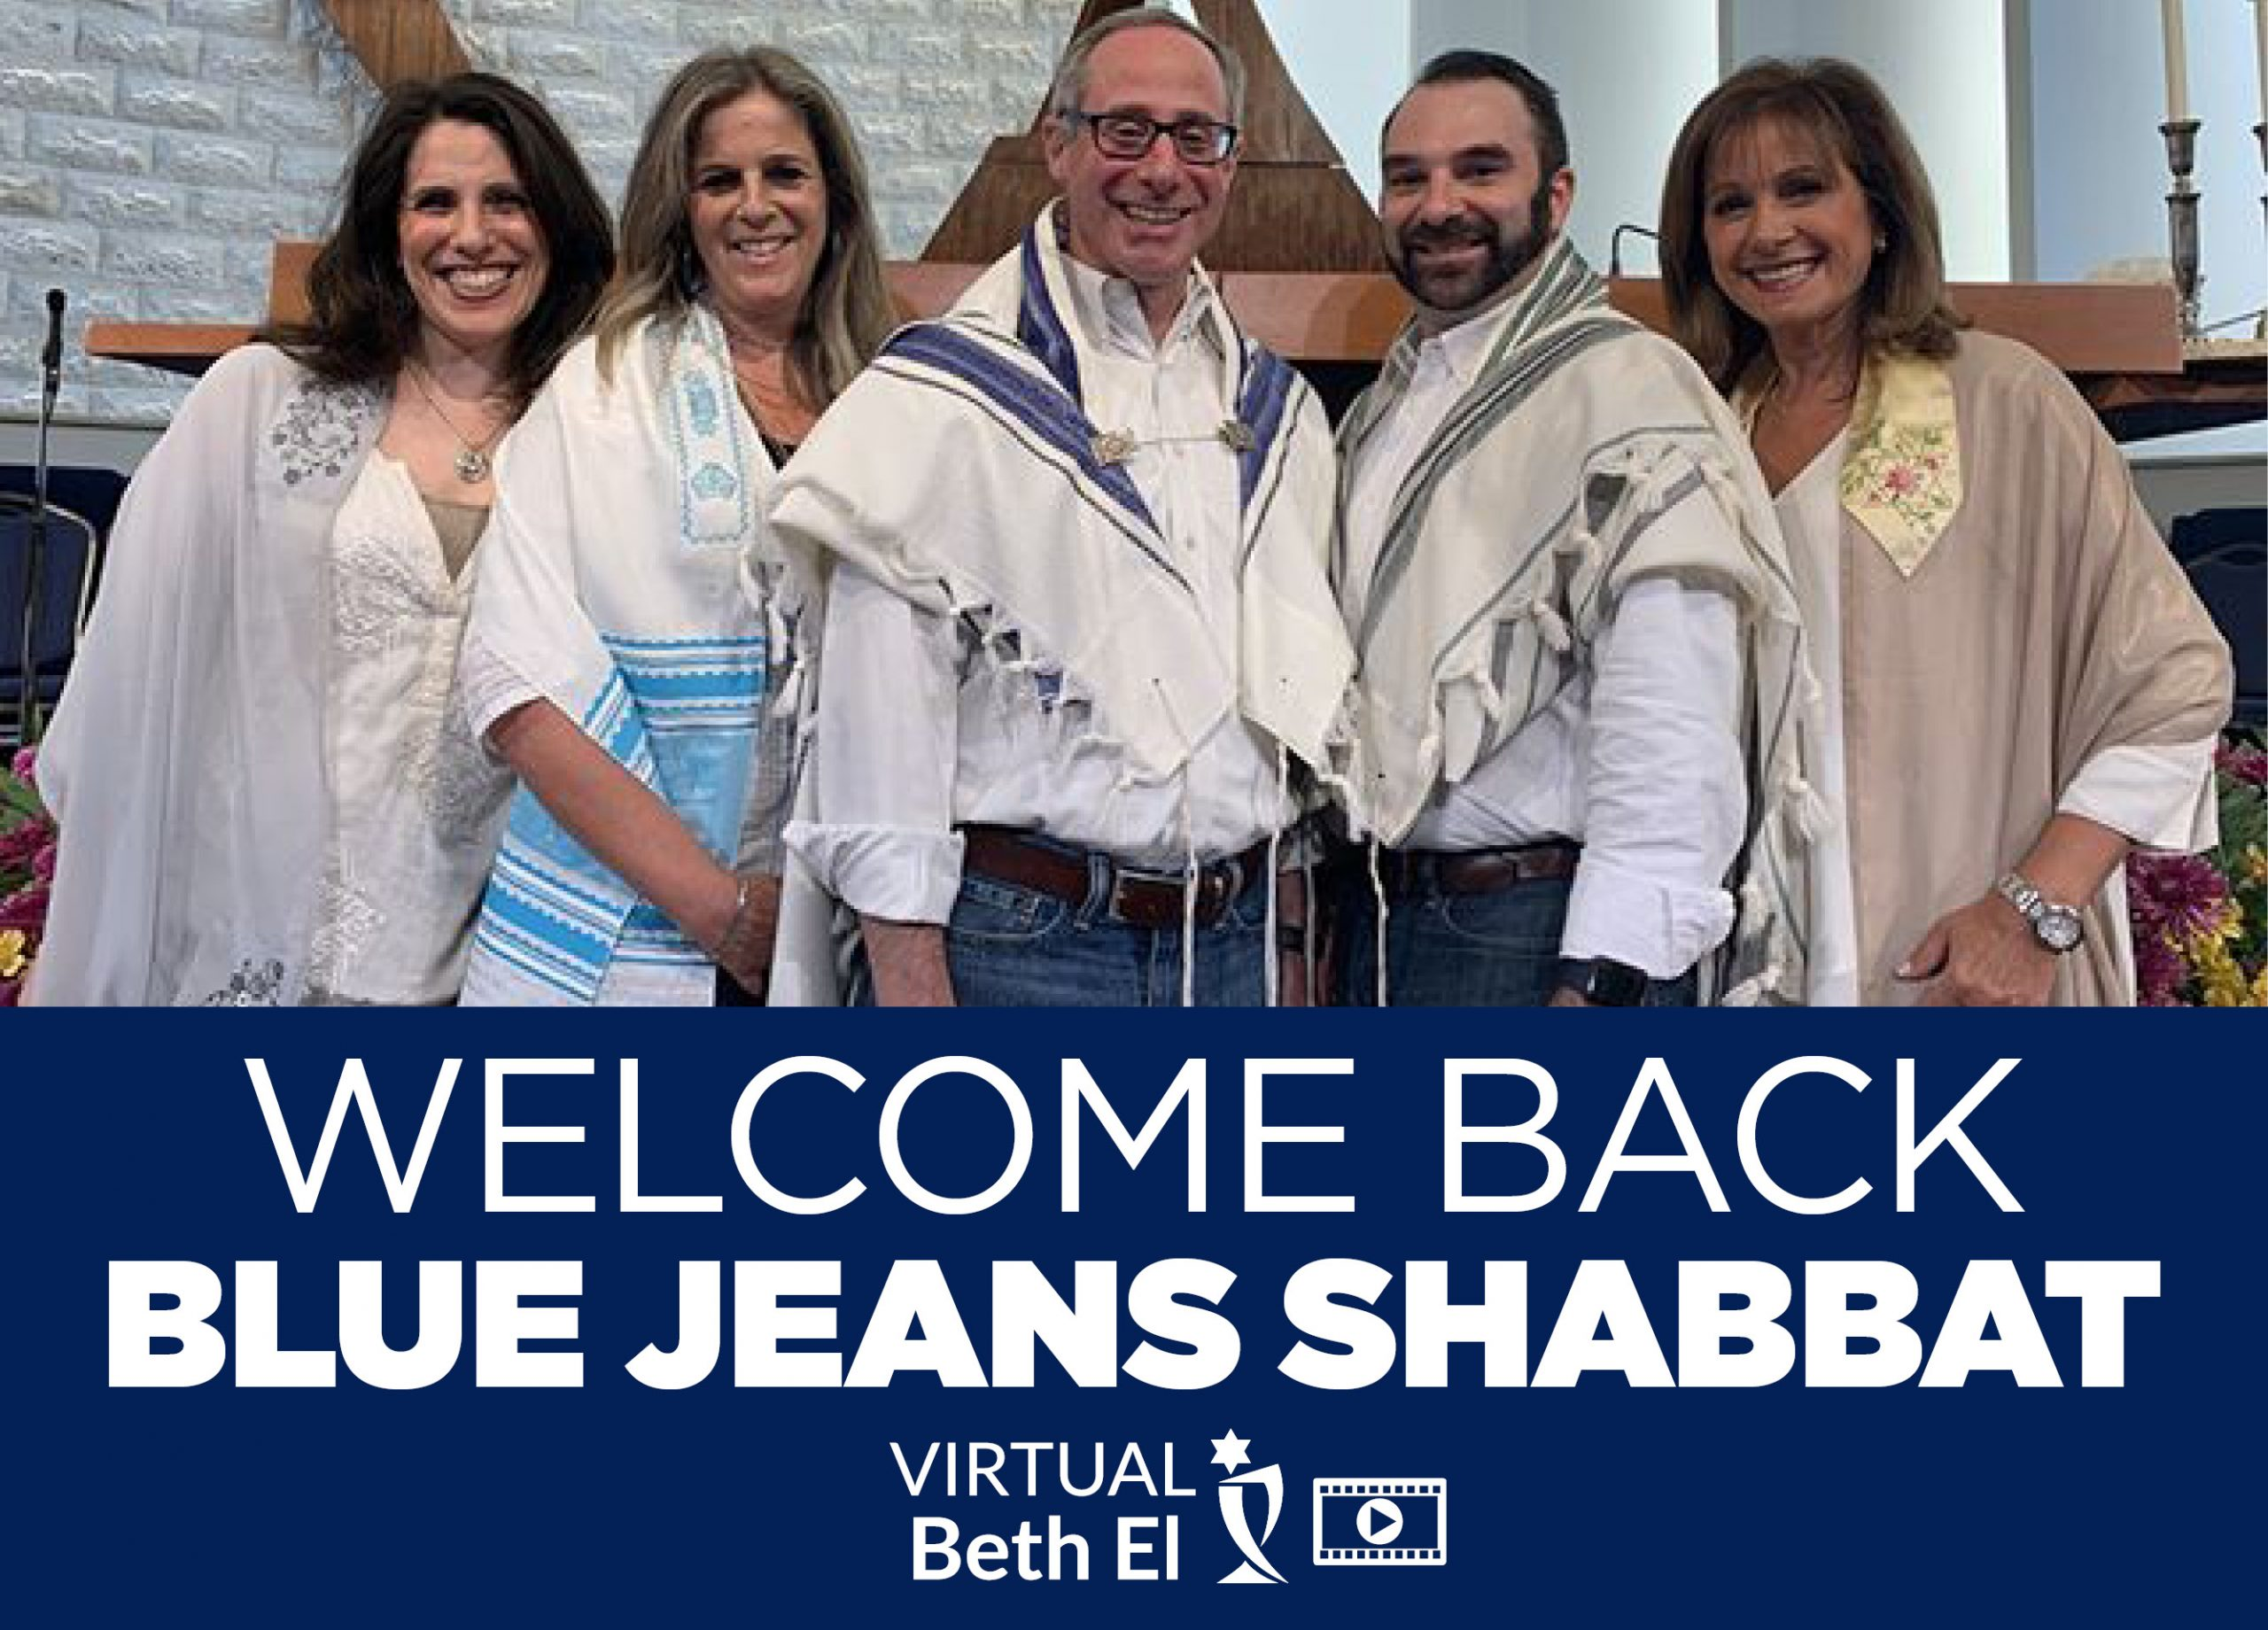 Welcome Back Blue Jeans Shabbat with Temple Beth El event graphic August 2021